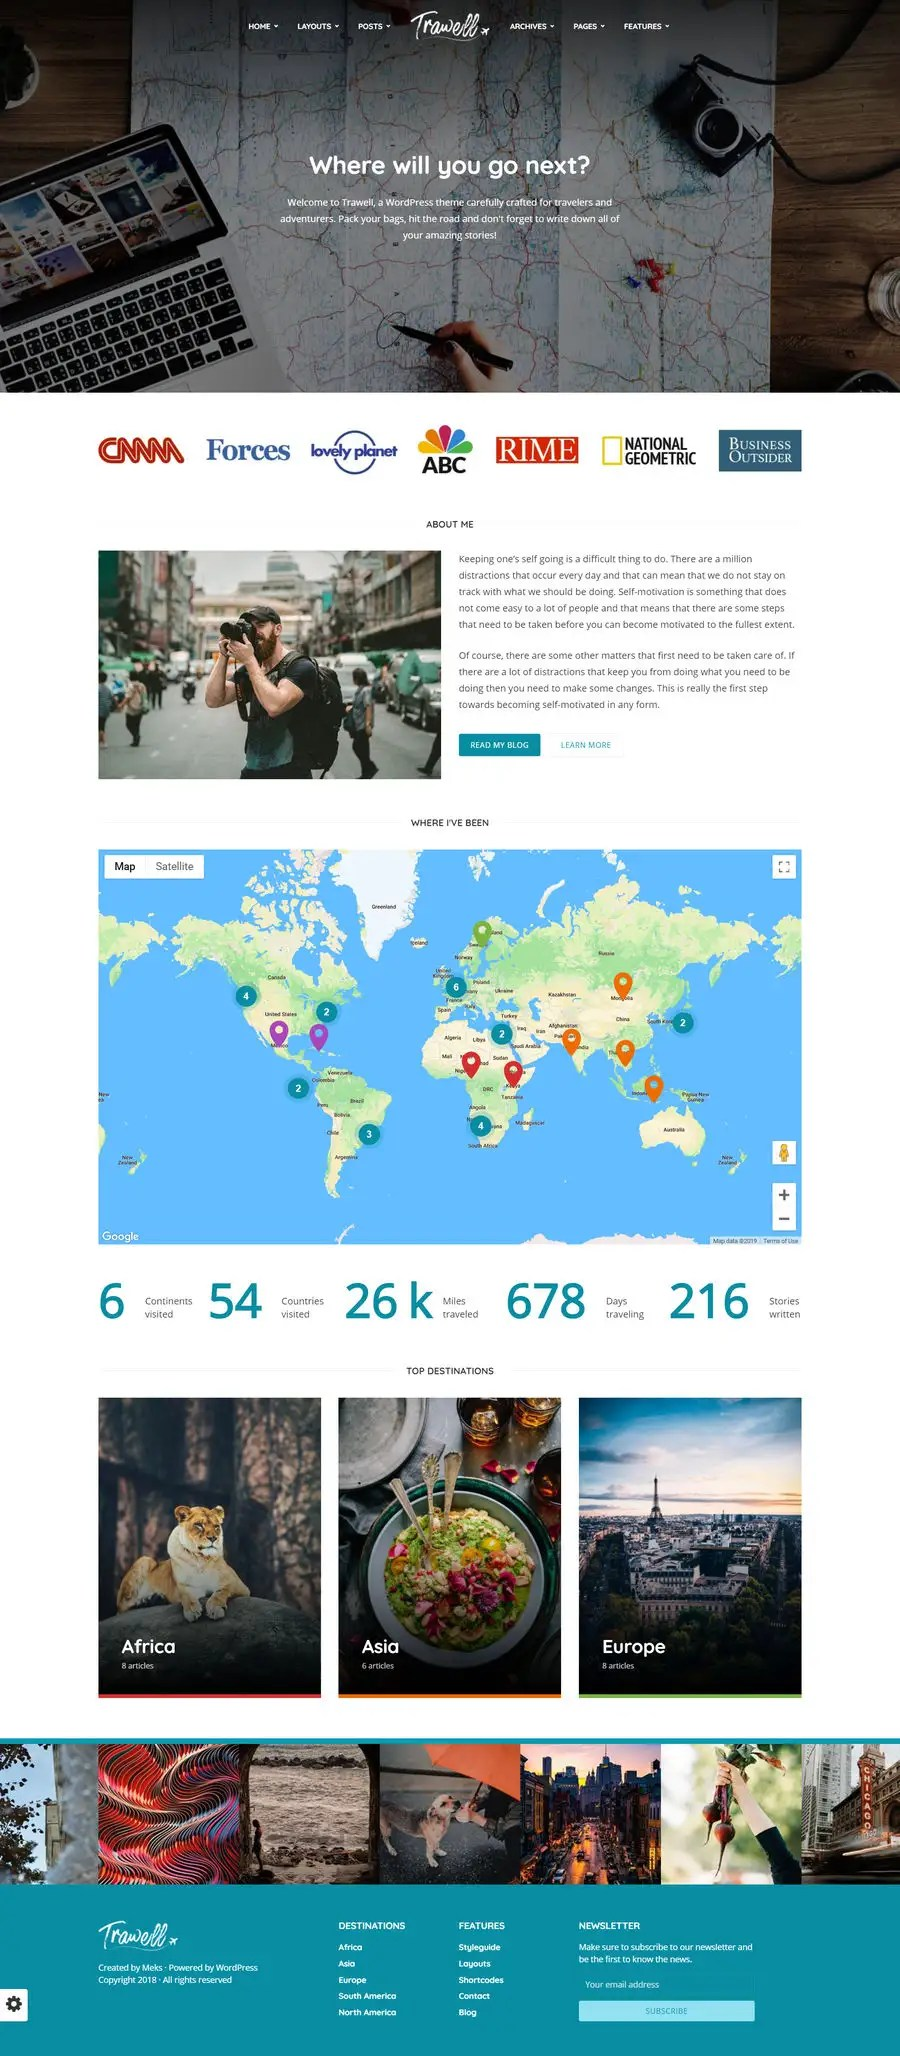 Travel Blog With Map Entry 84 By Ueccse1 For Build A Travel Blog Website